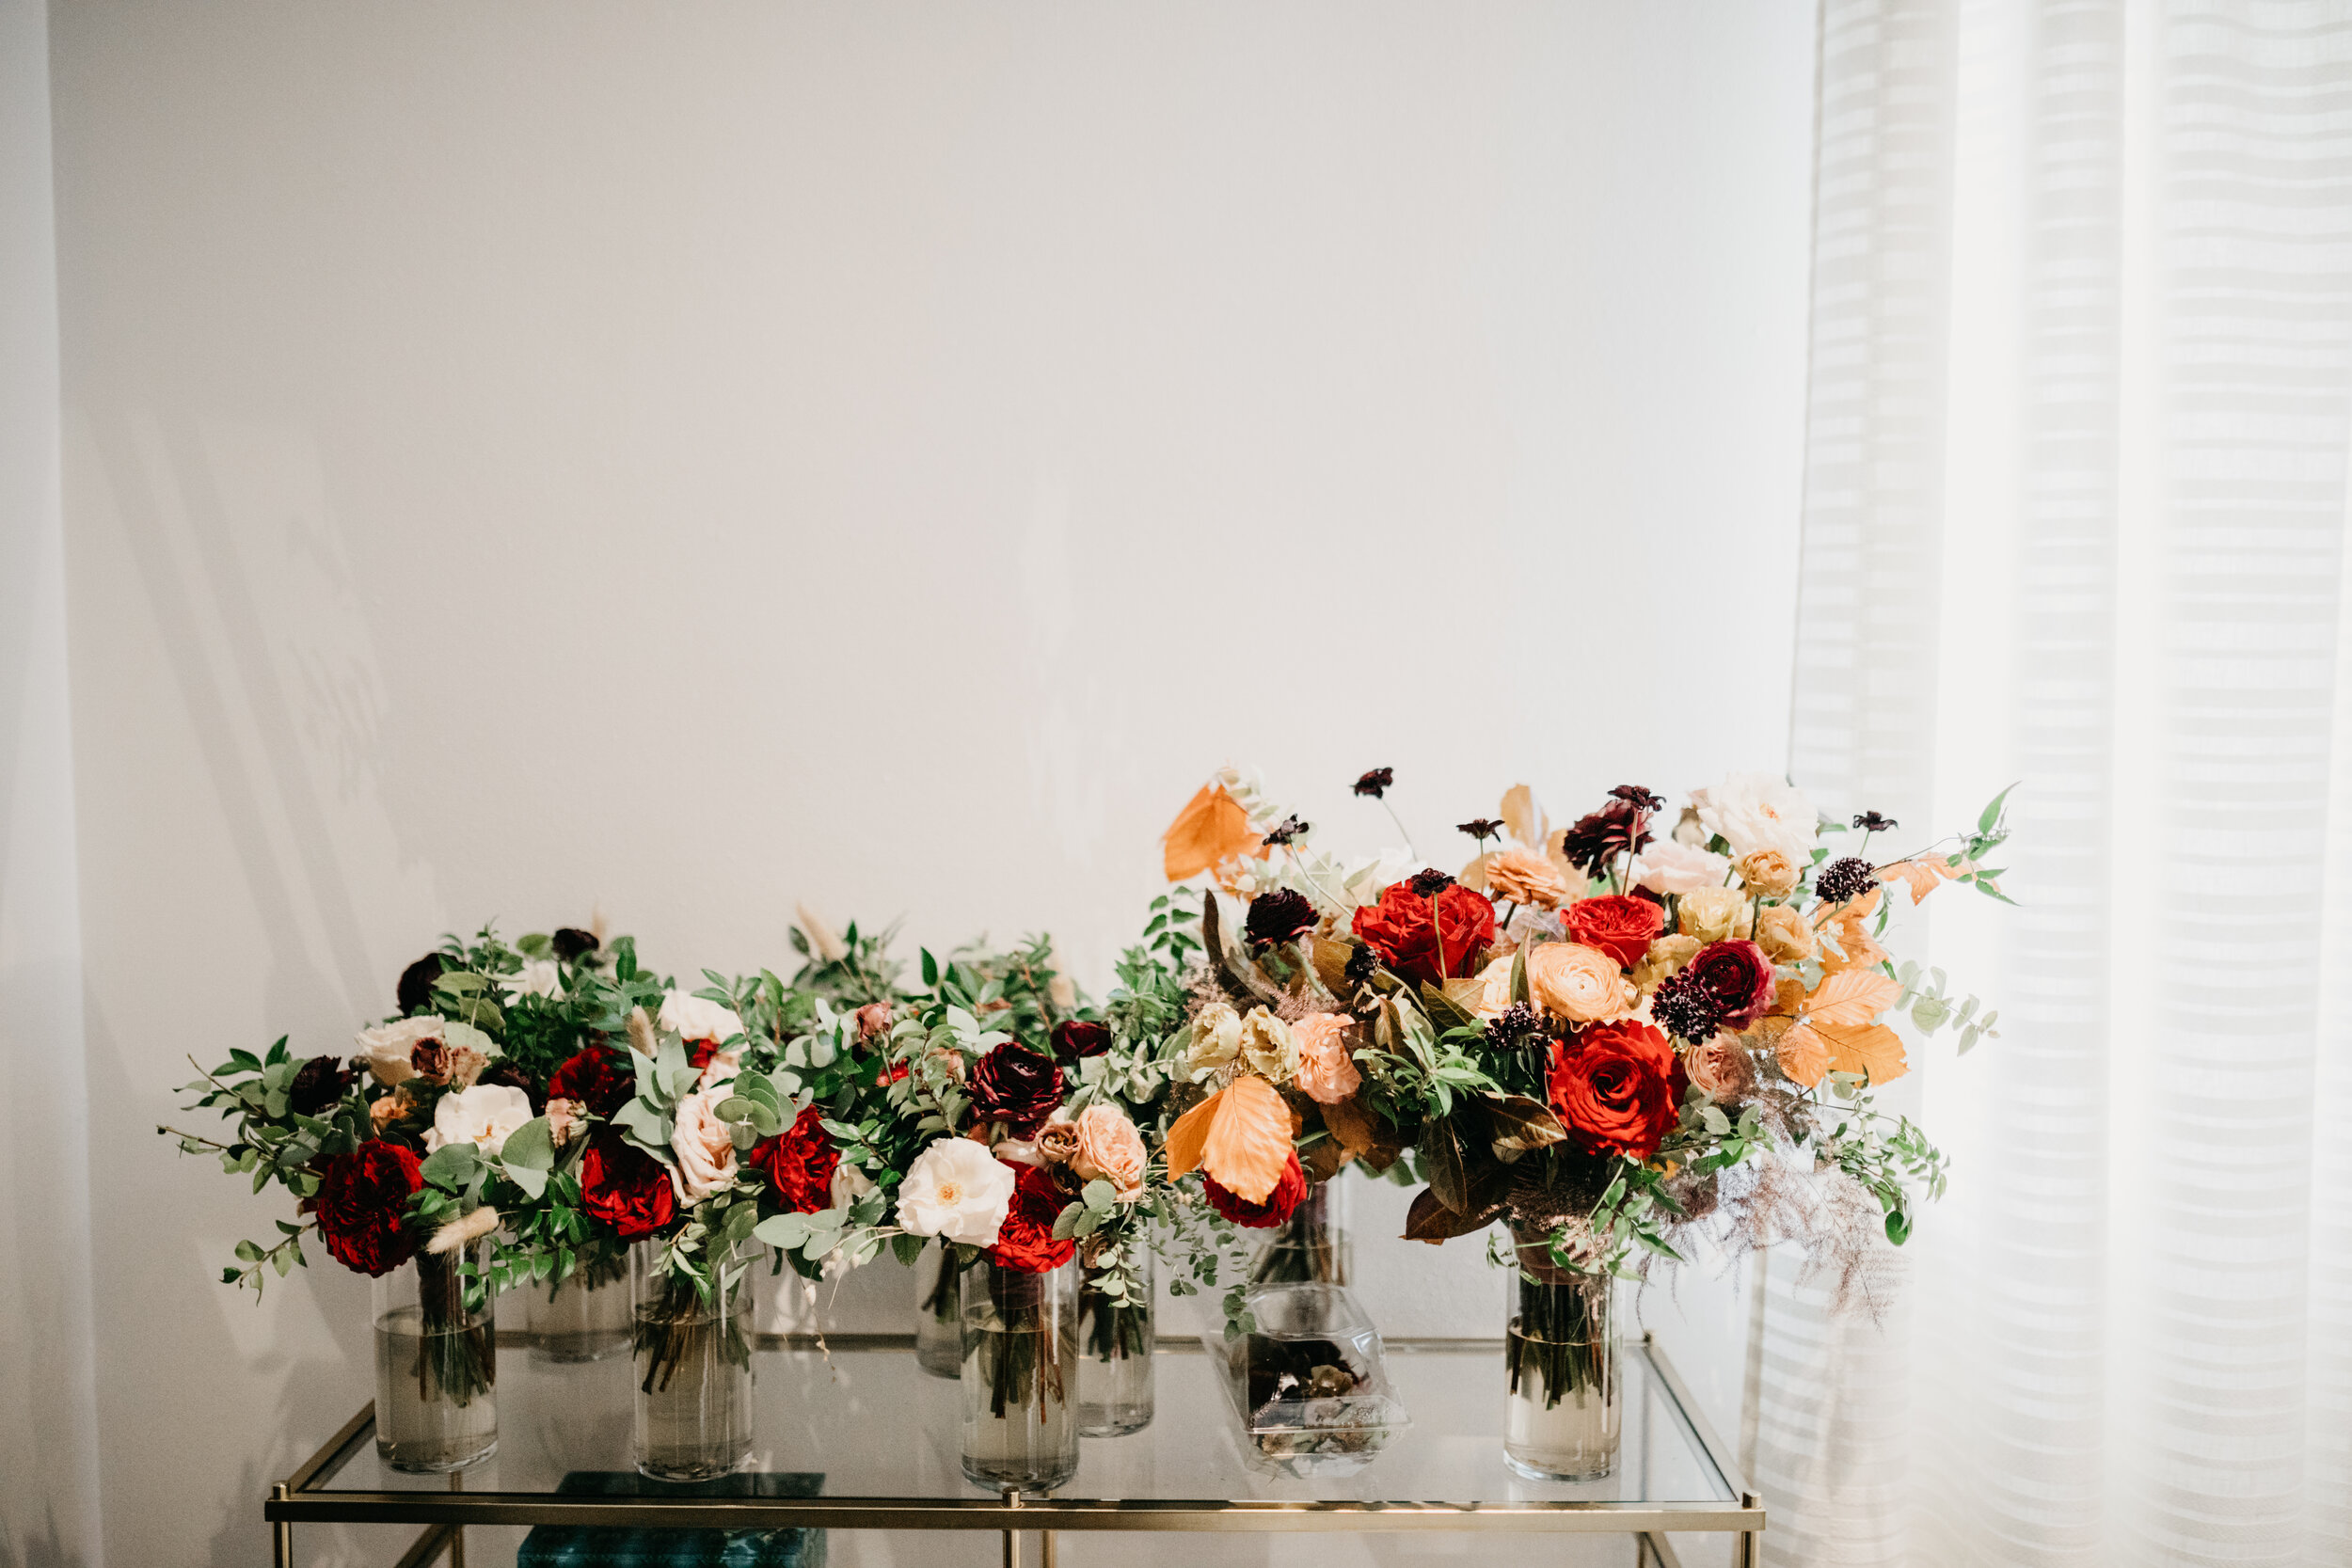 Jess Scott Lush Fall Wedding Floral Design At Clementine In Nashville Tn Rosemary Finch Floral Design Nashville Tn